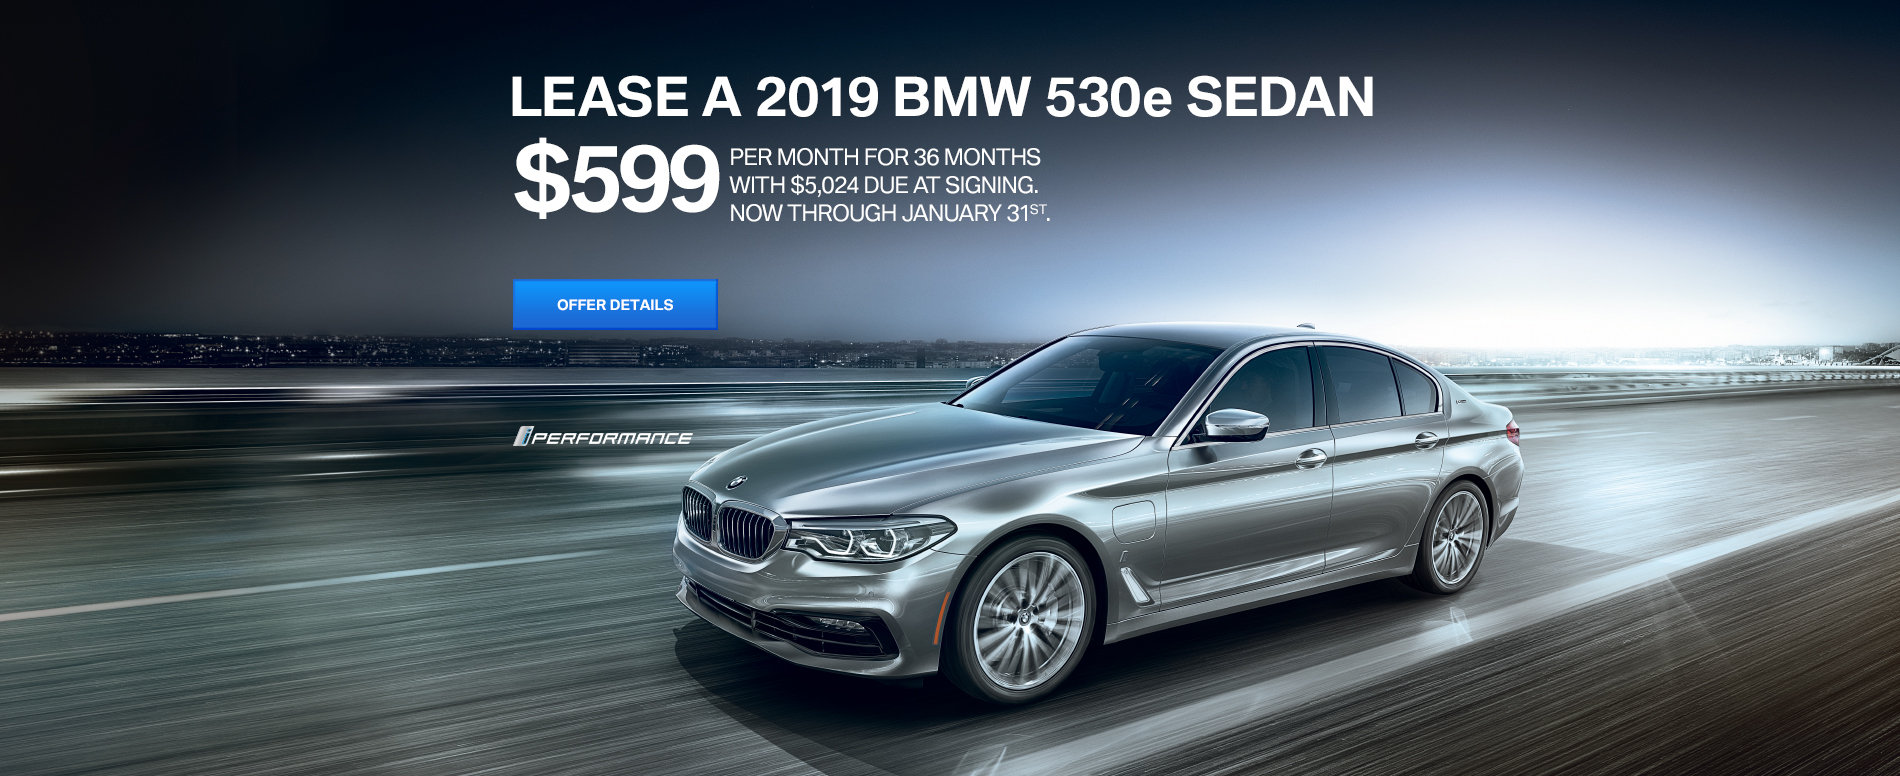 LEASE A 2019 BMW 530e FOR $599/MONTH FOR 36 MONTHS WITH $5,024 D